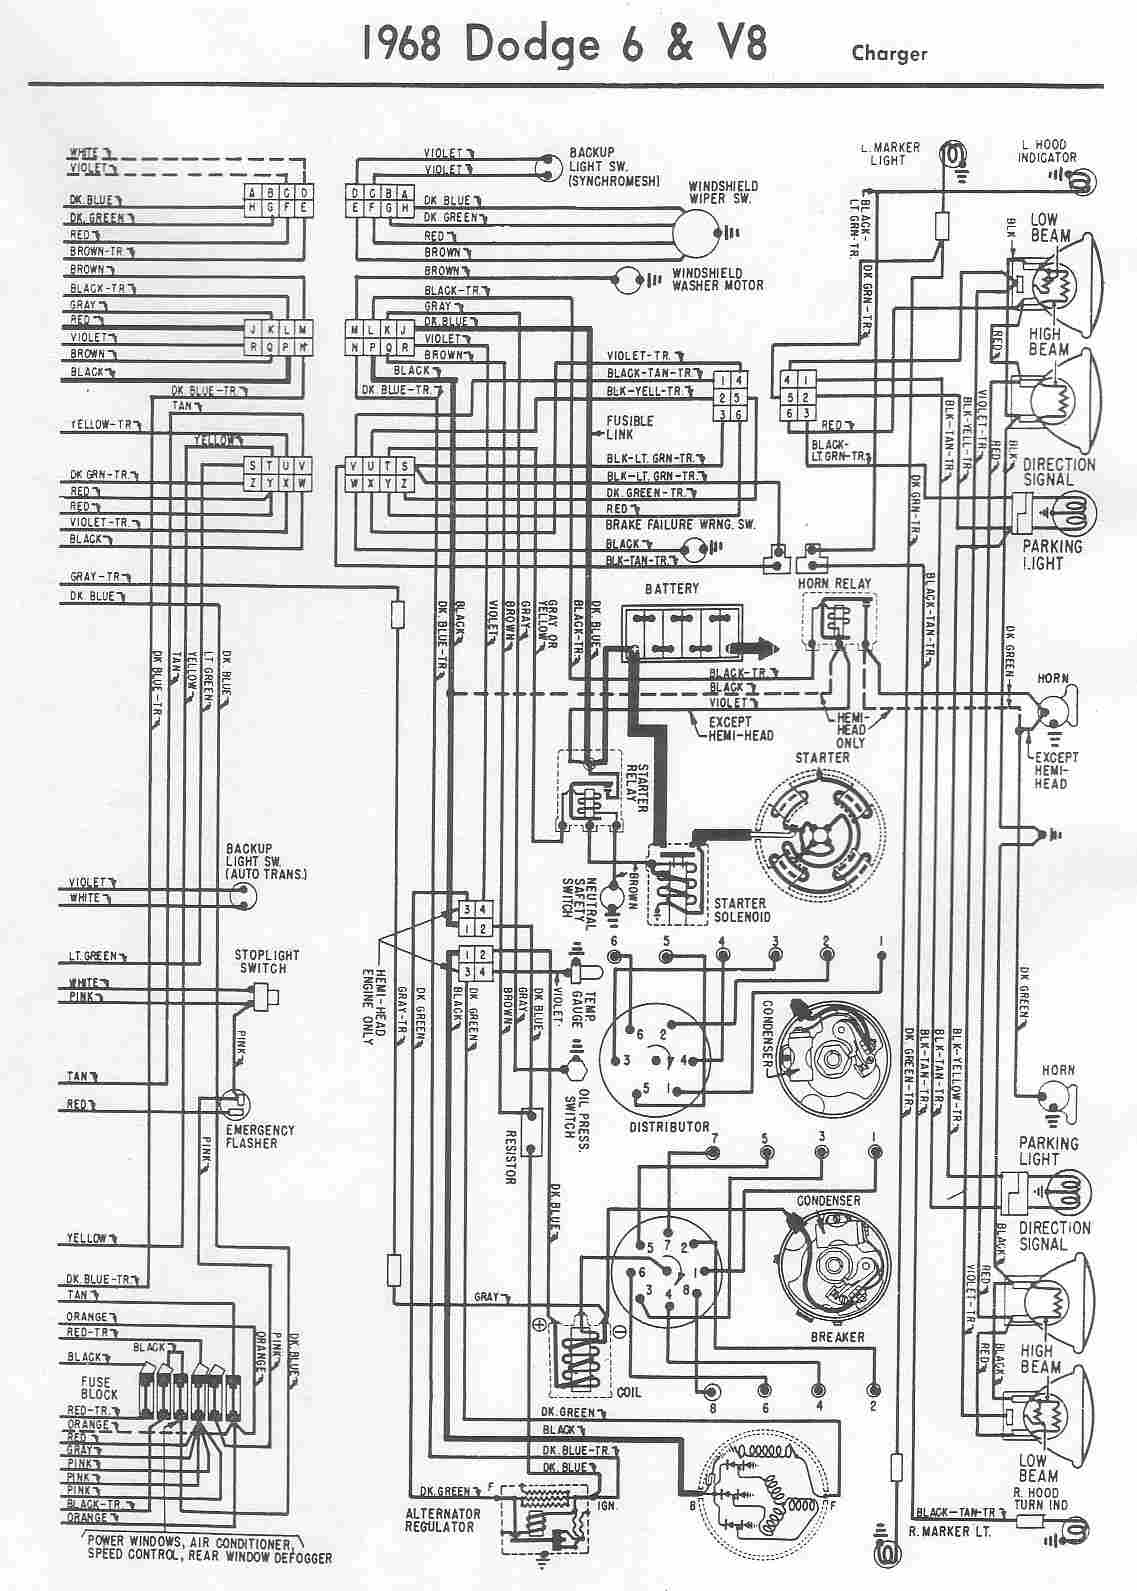 1968 charger wiring diagram